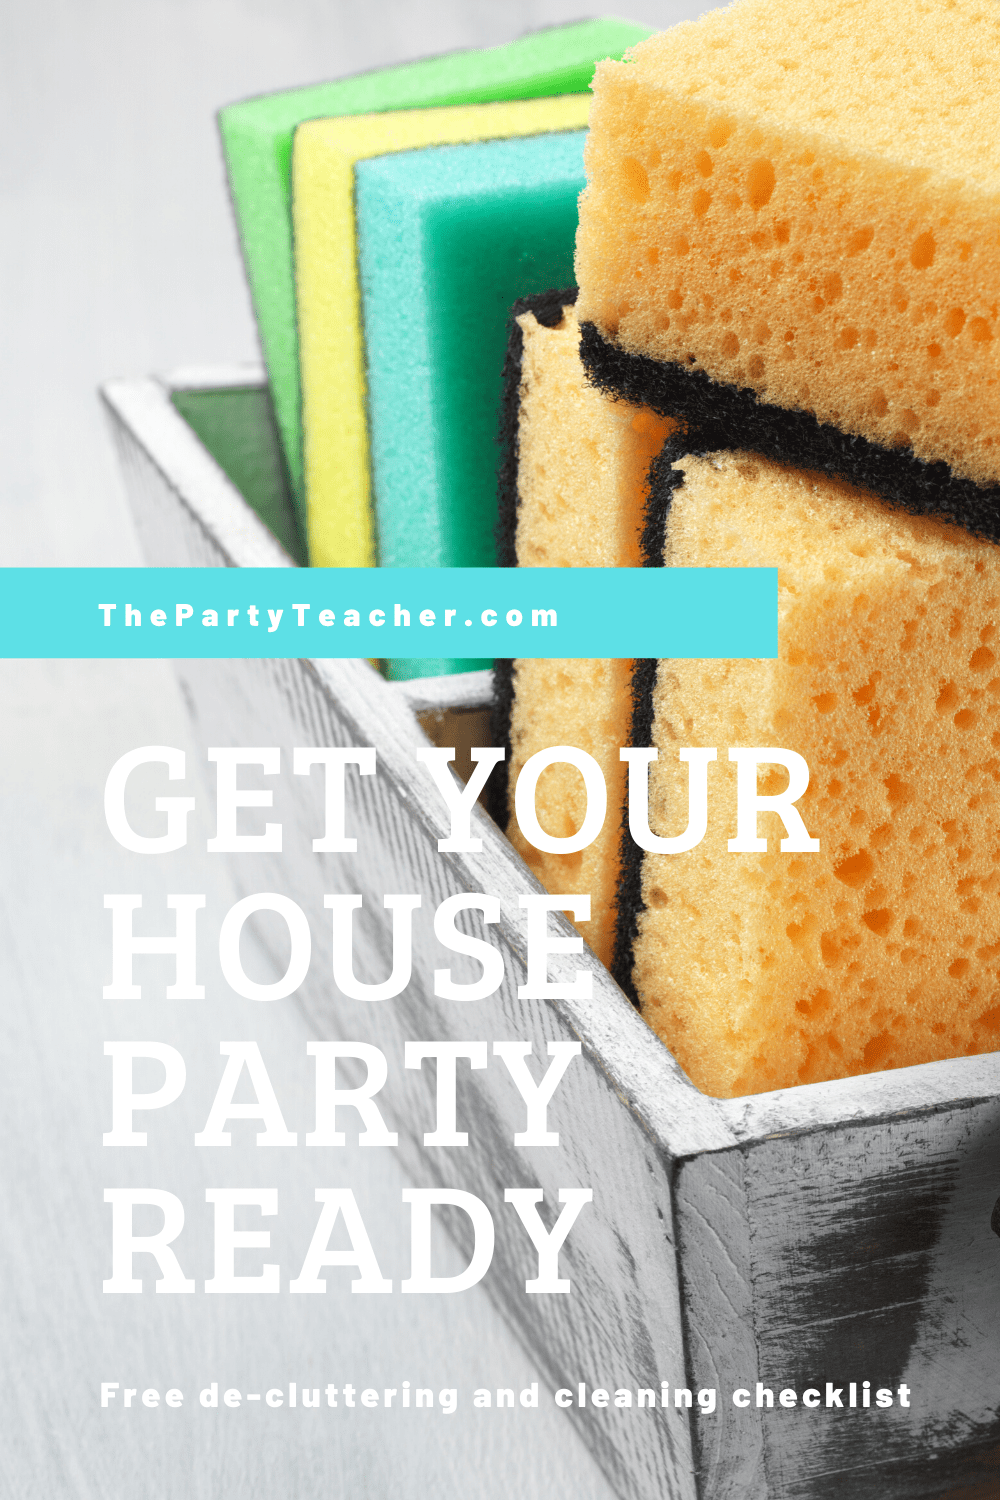 Get your house party ready - free decluttering cleaning checklist - The Party Teacher